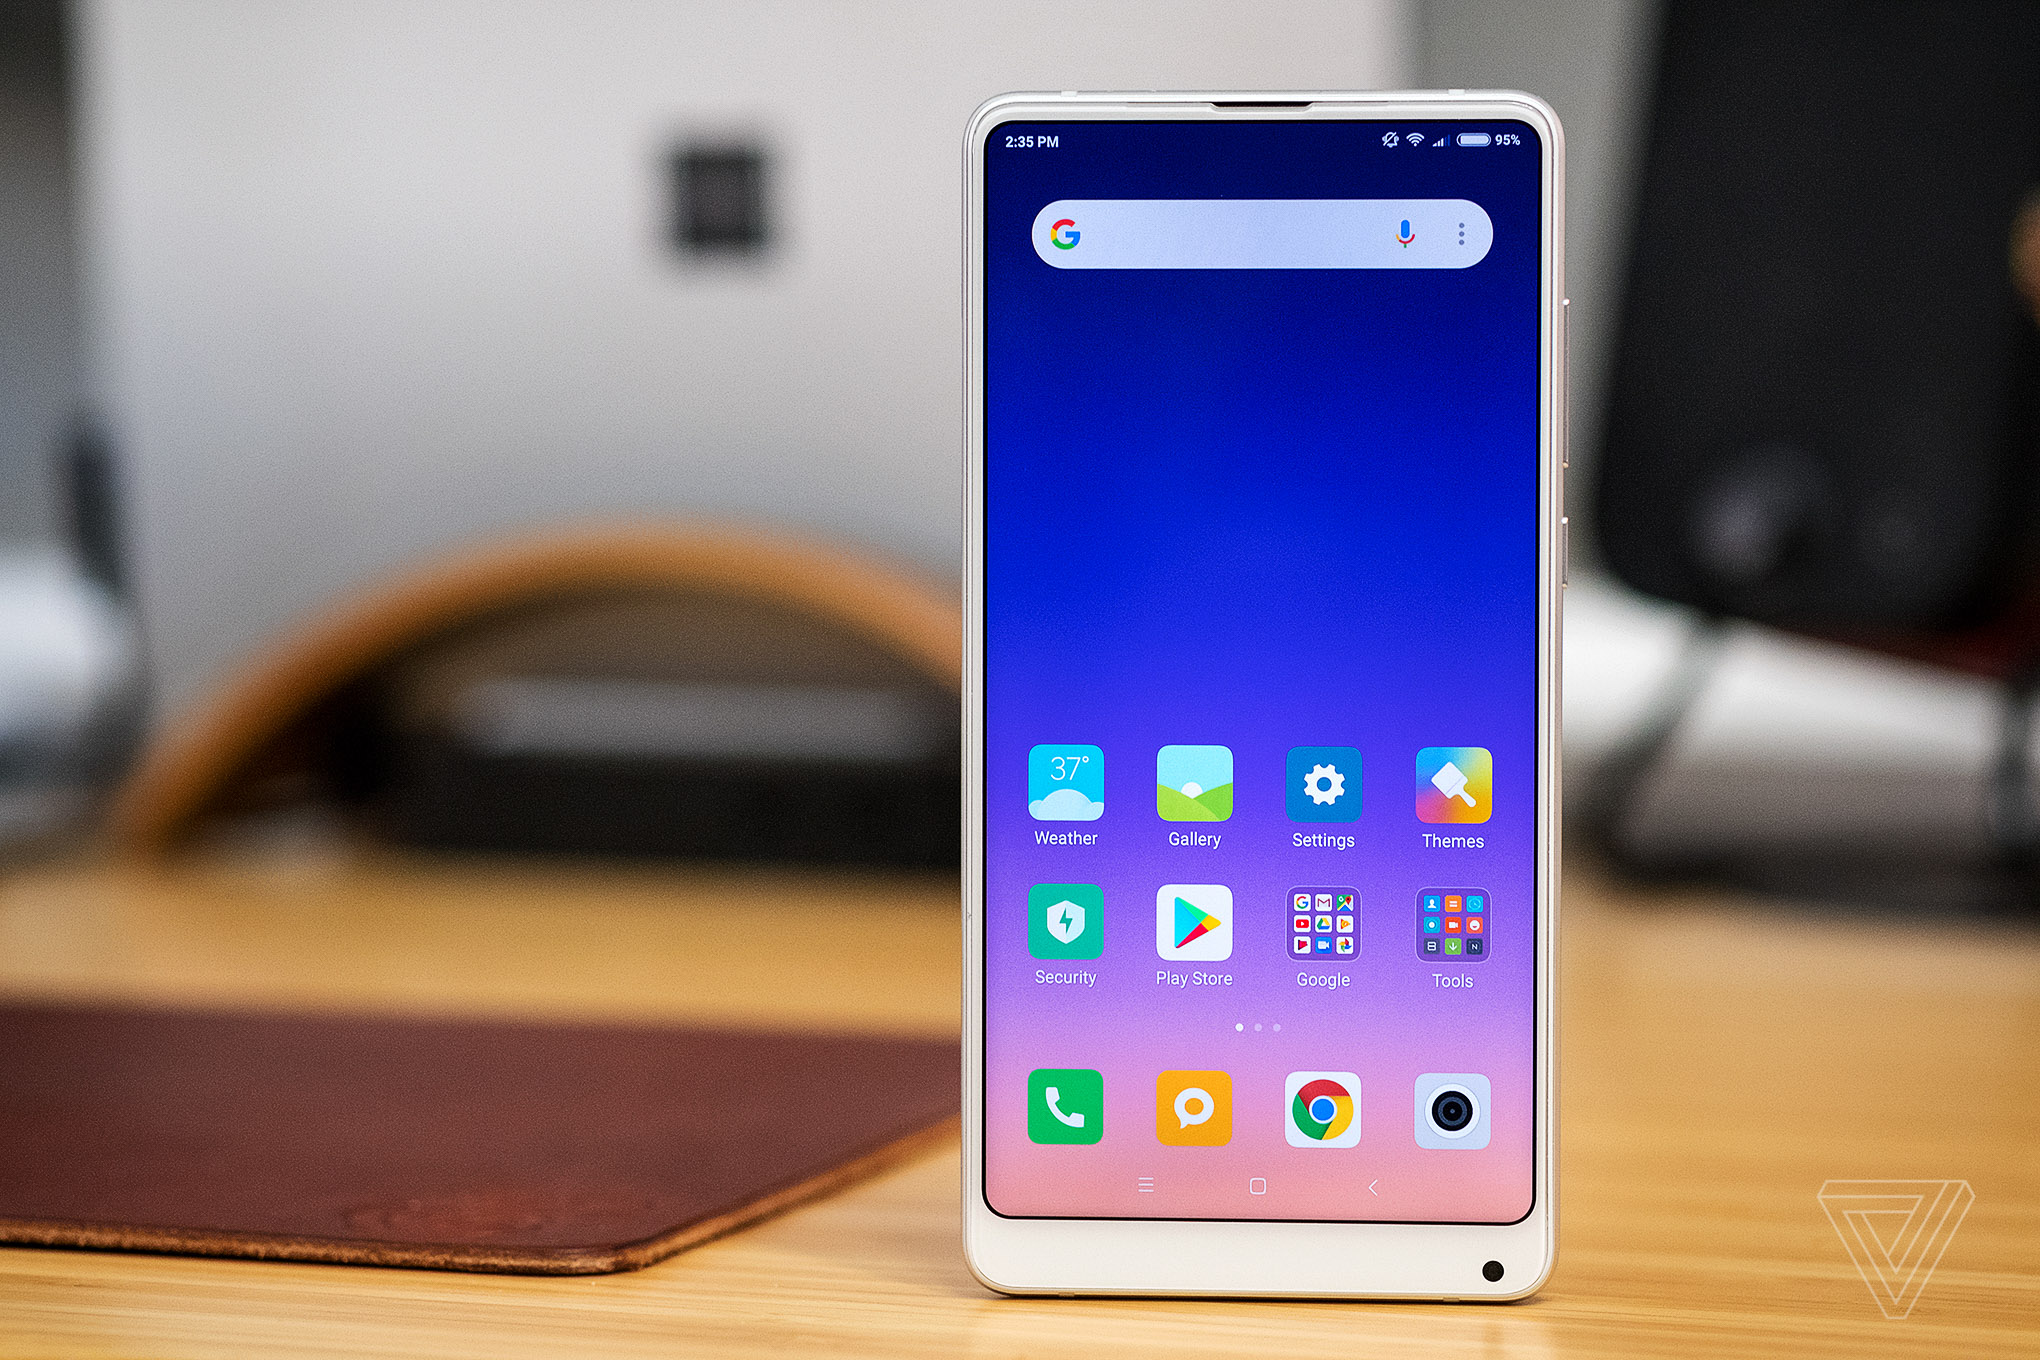 Xiaomi Says Its New Mi Mix 2s Has Better Features Than Apples Redmi 2 Ram 1 8gb Iphone X The Verge